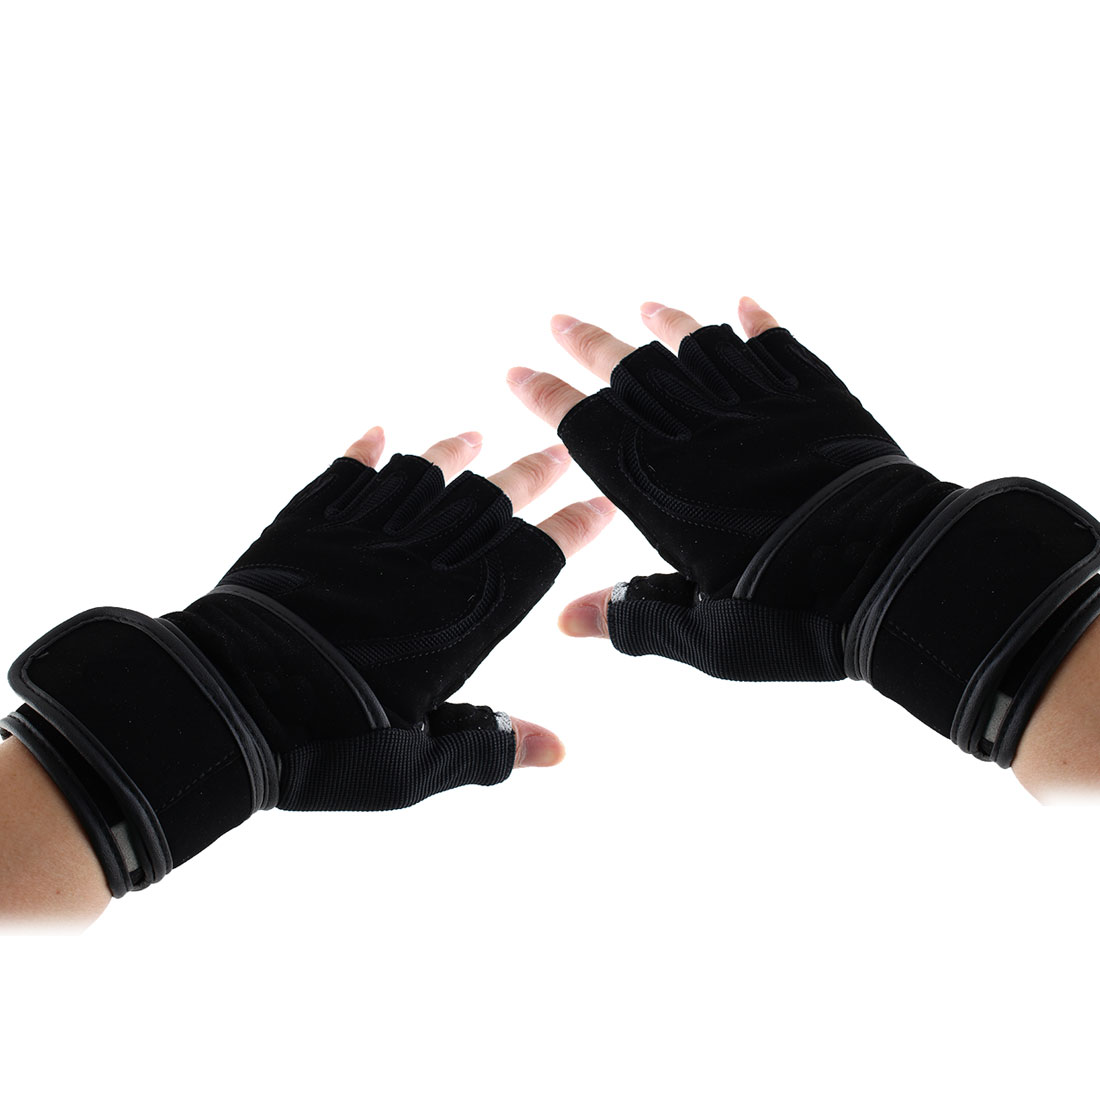 Boodun Authorized Men Sports Weight Lifting Cycling Gym Workout Fitness Anti Slip Half Finger Gloves Size XL Pair